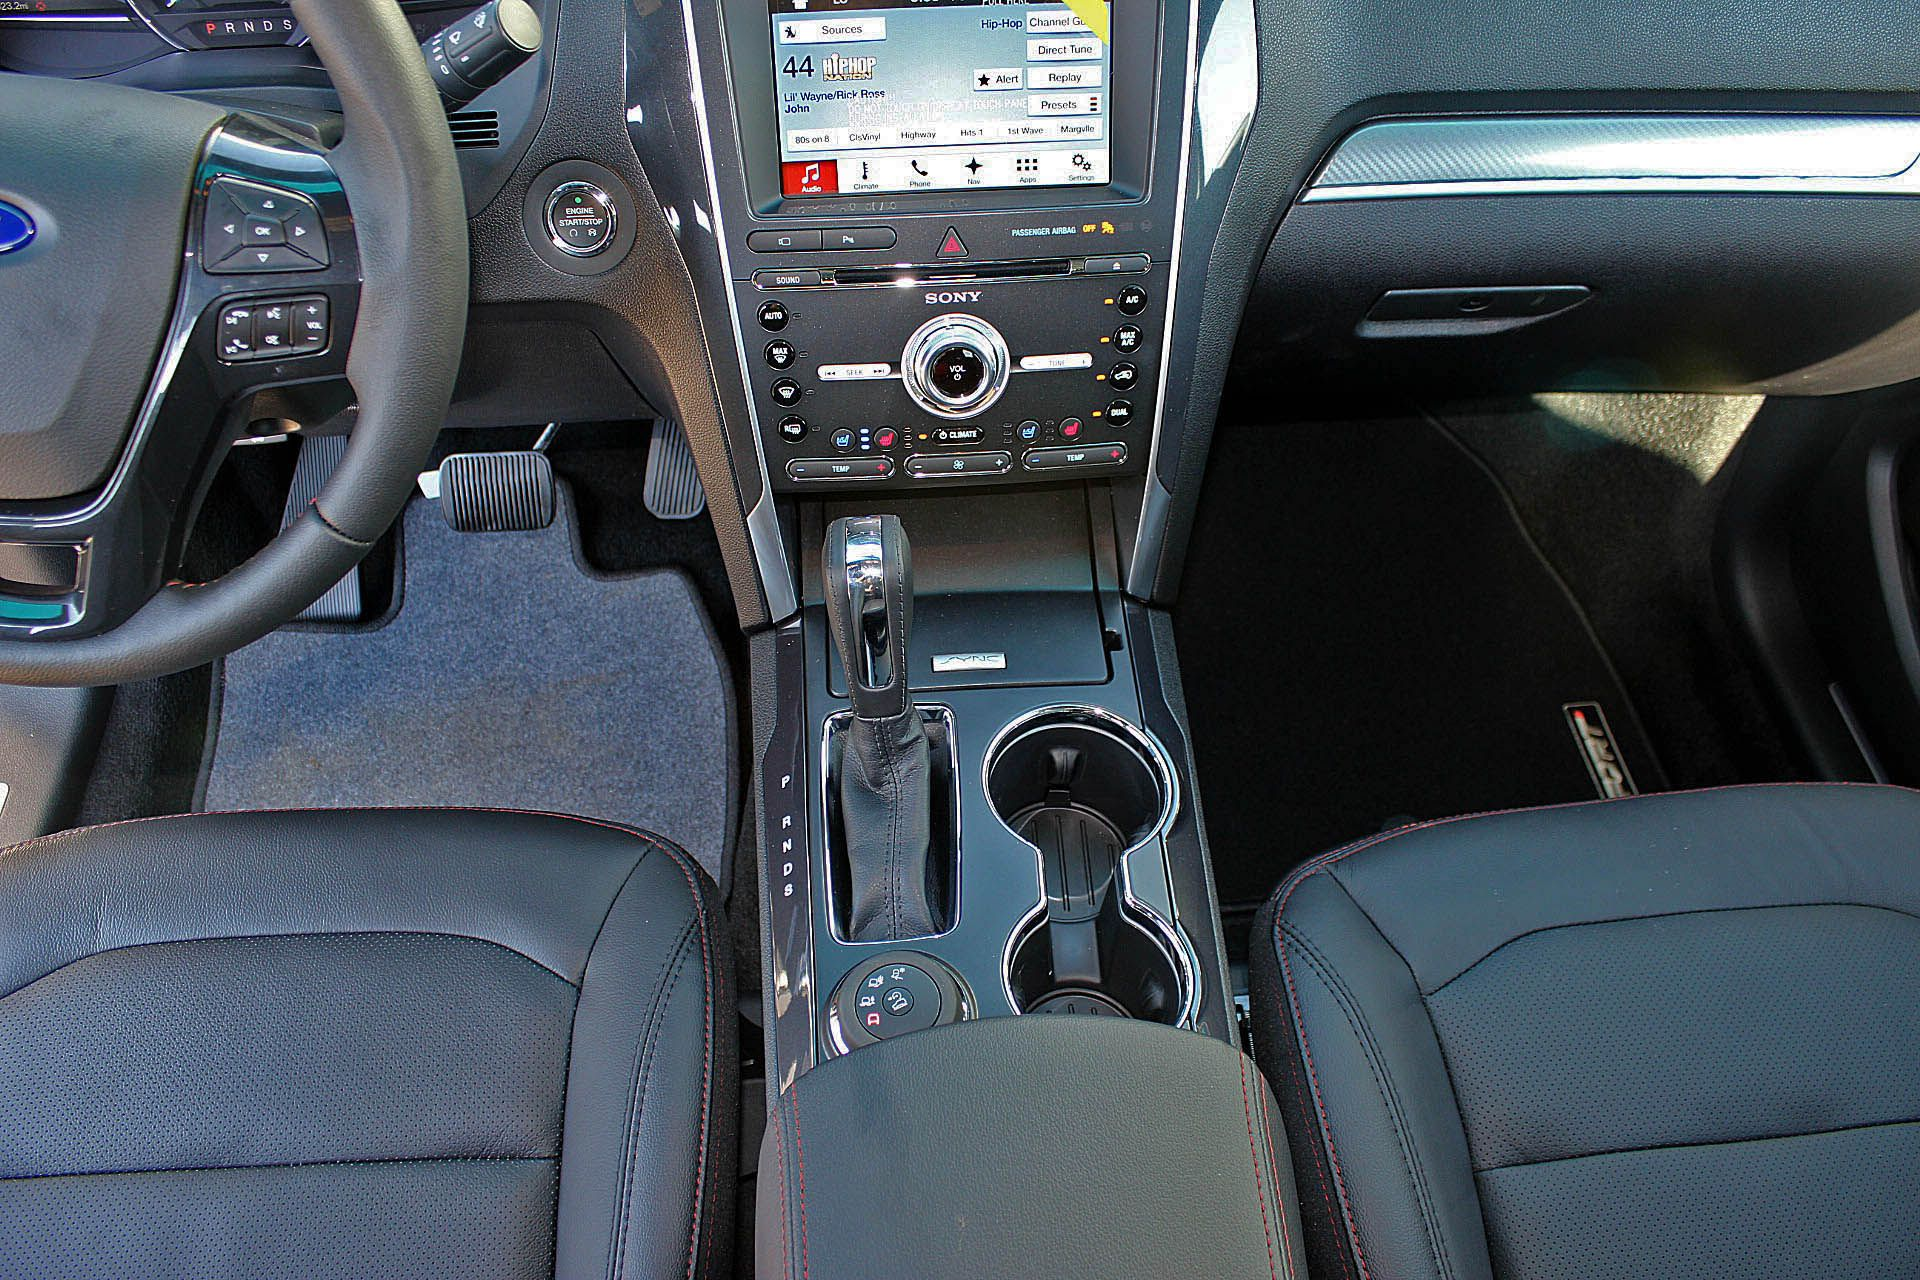 2017 Ford Fusion Interior With Images Ford Fusion Ford Dream